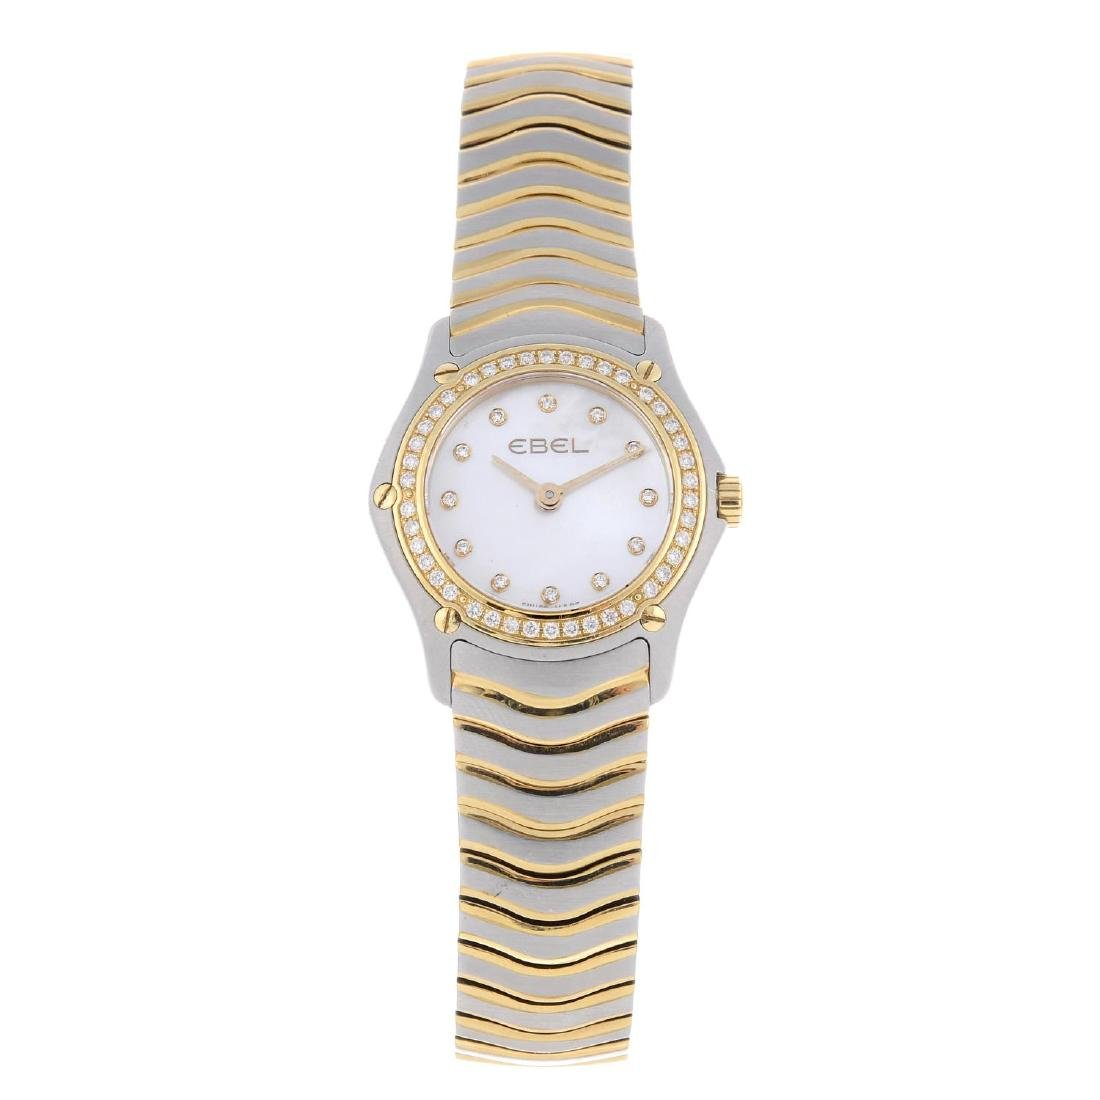 EBEL - a lady's Classic bracelet watch. Stainless steel